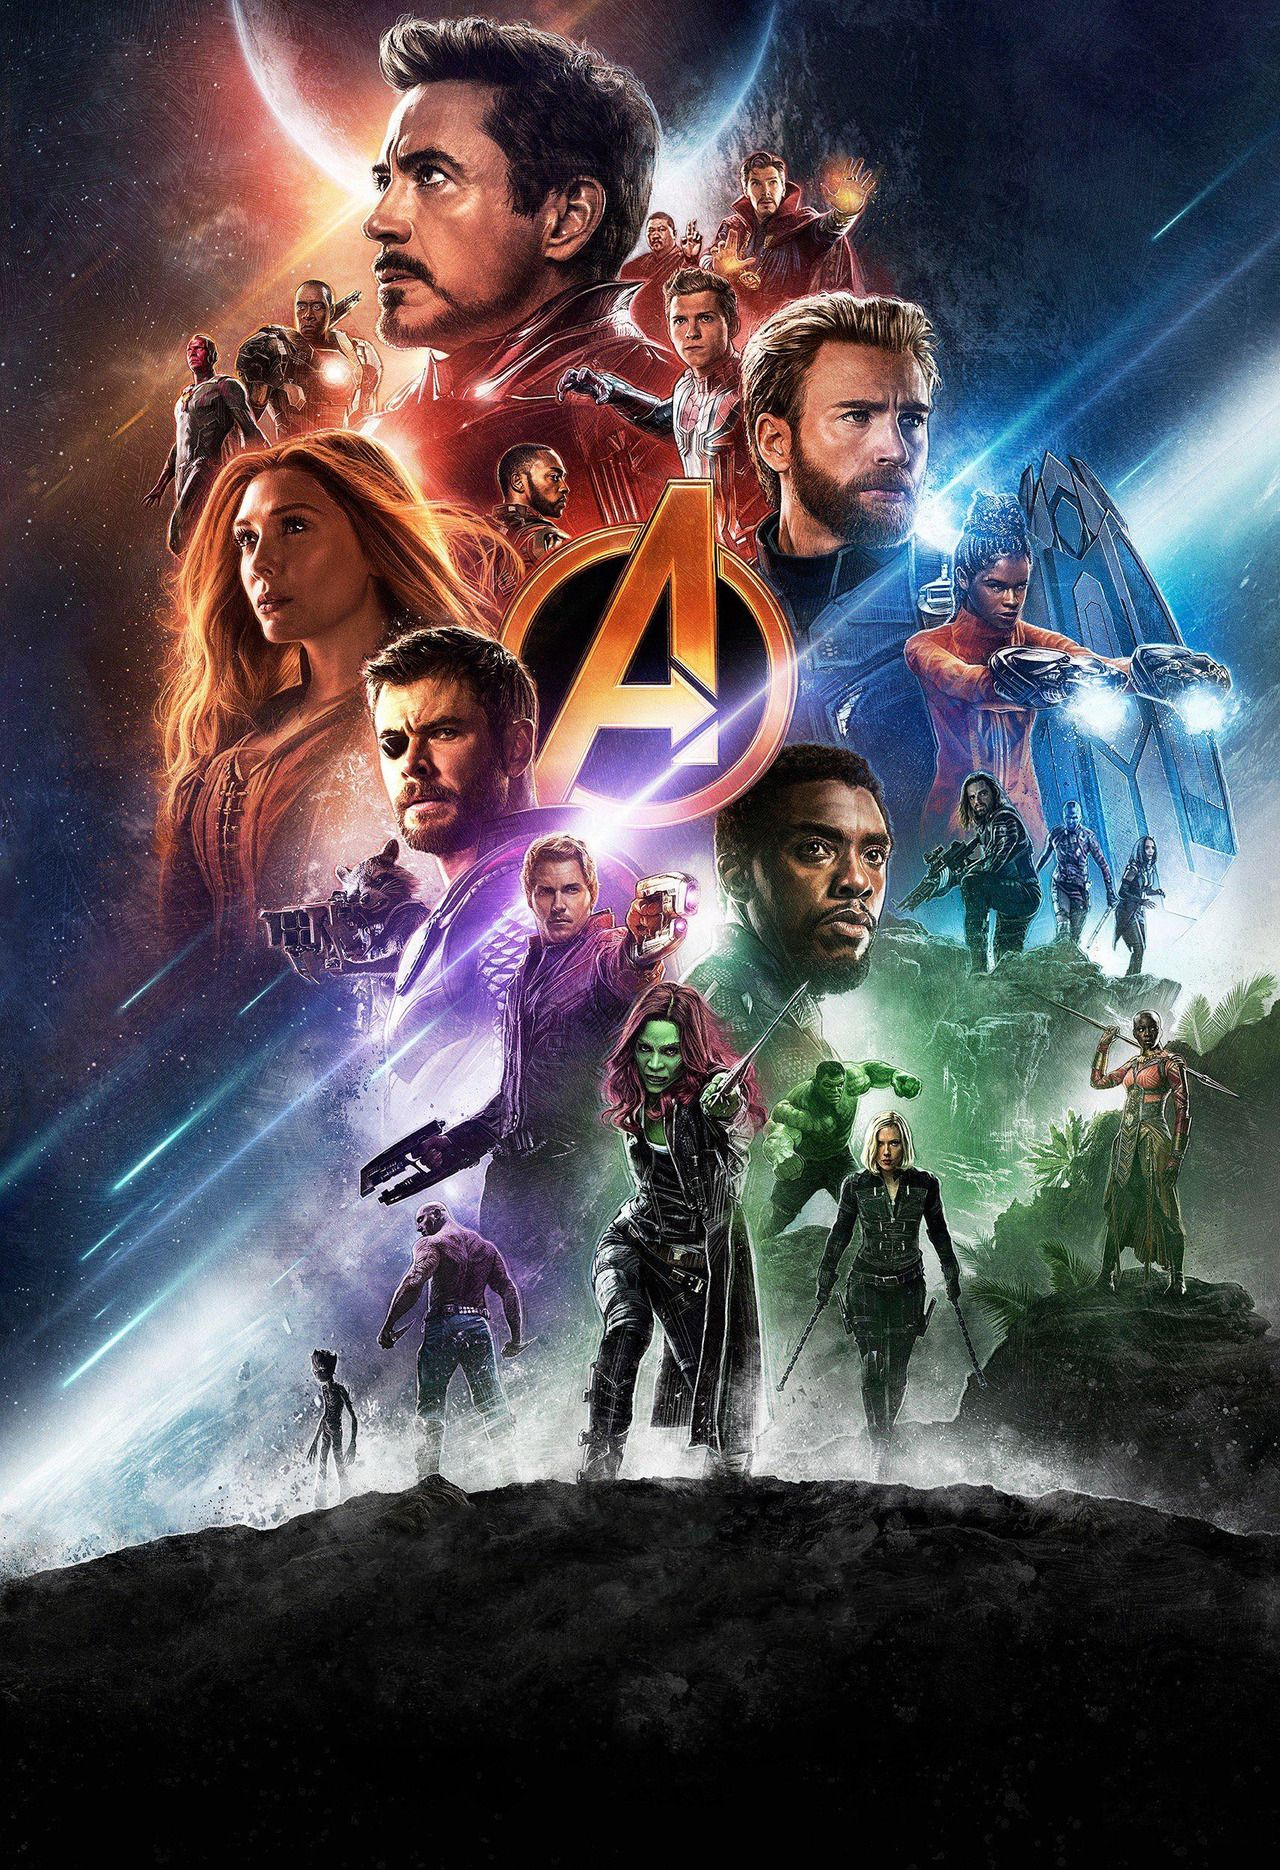 Avengers Infinity War Created By Paul Shipper Avengers Movies